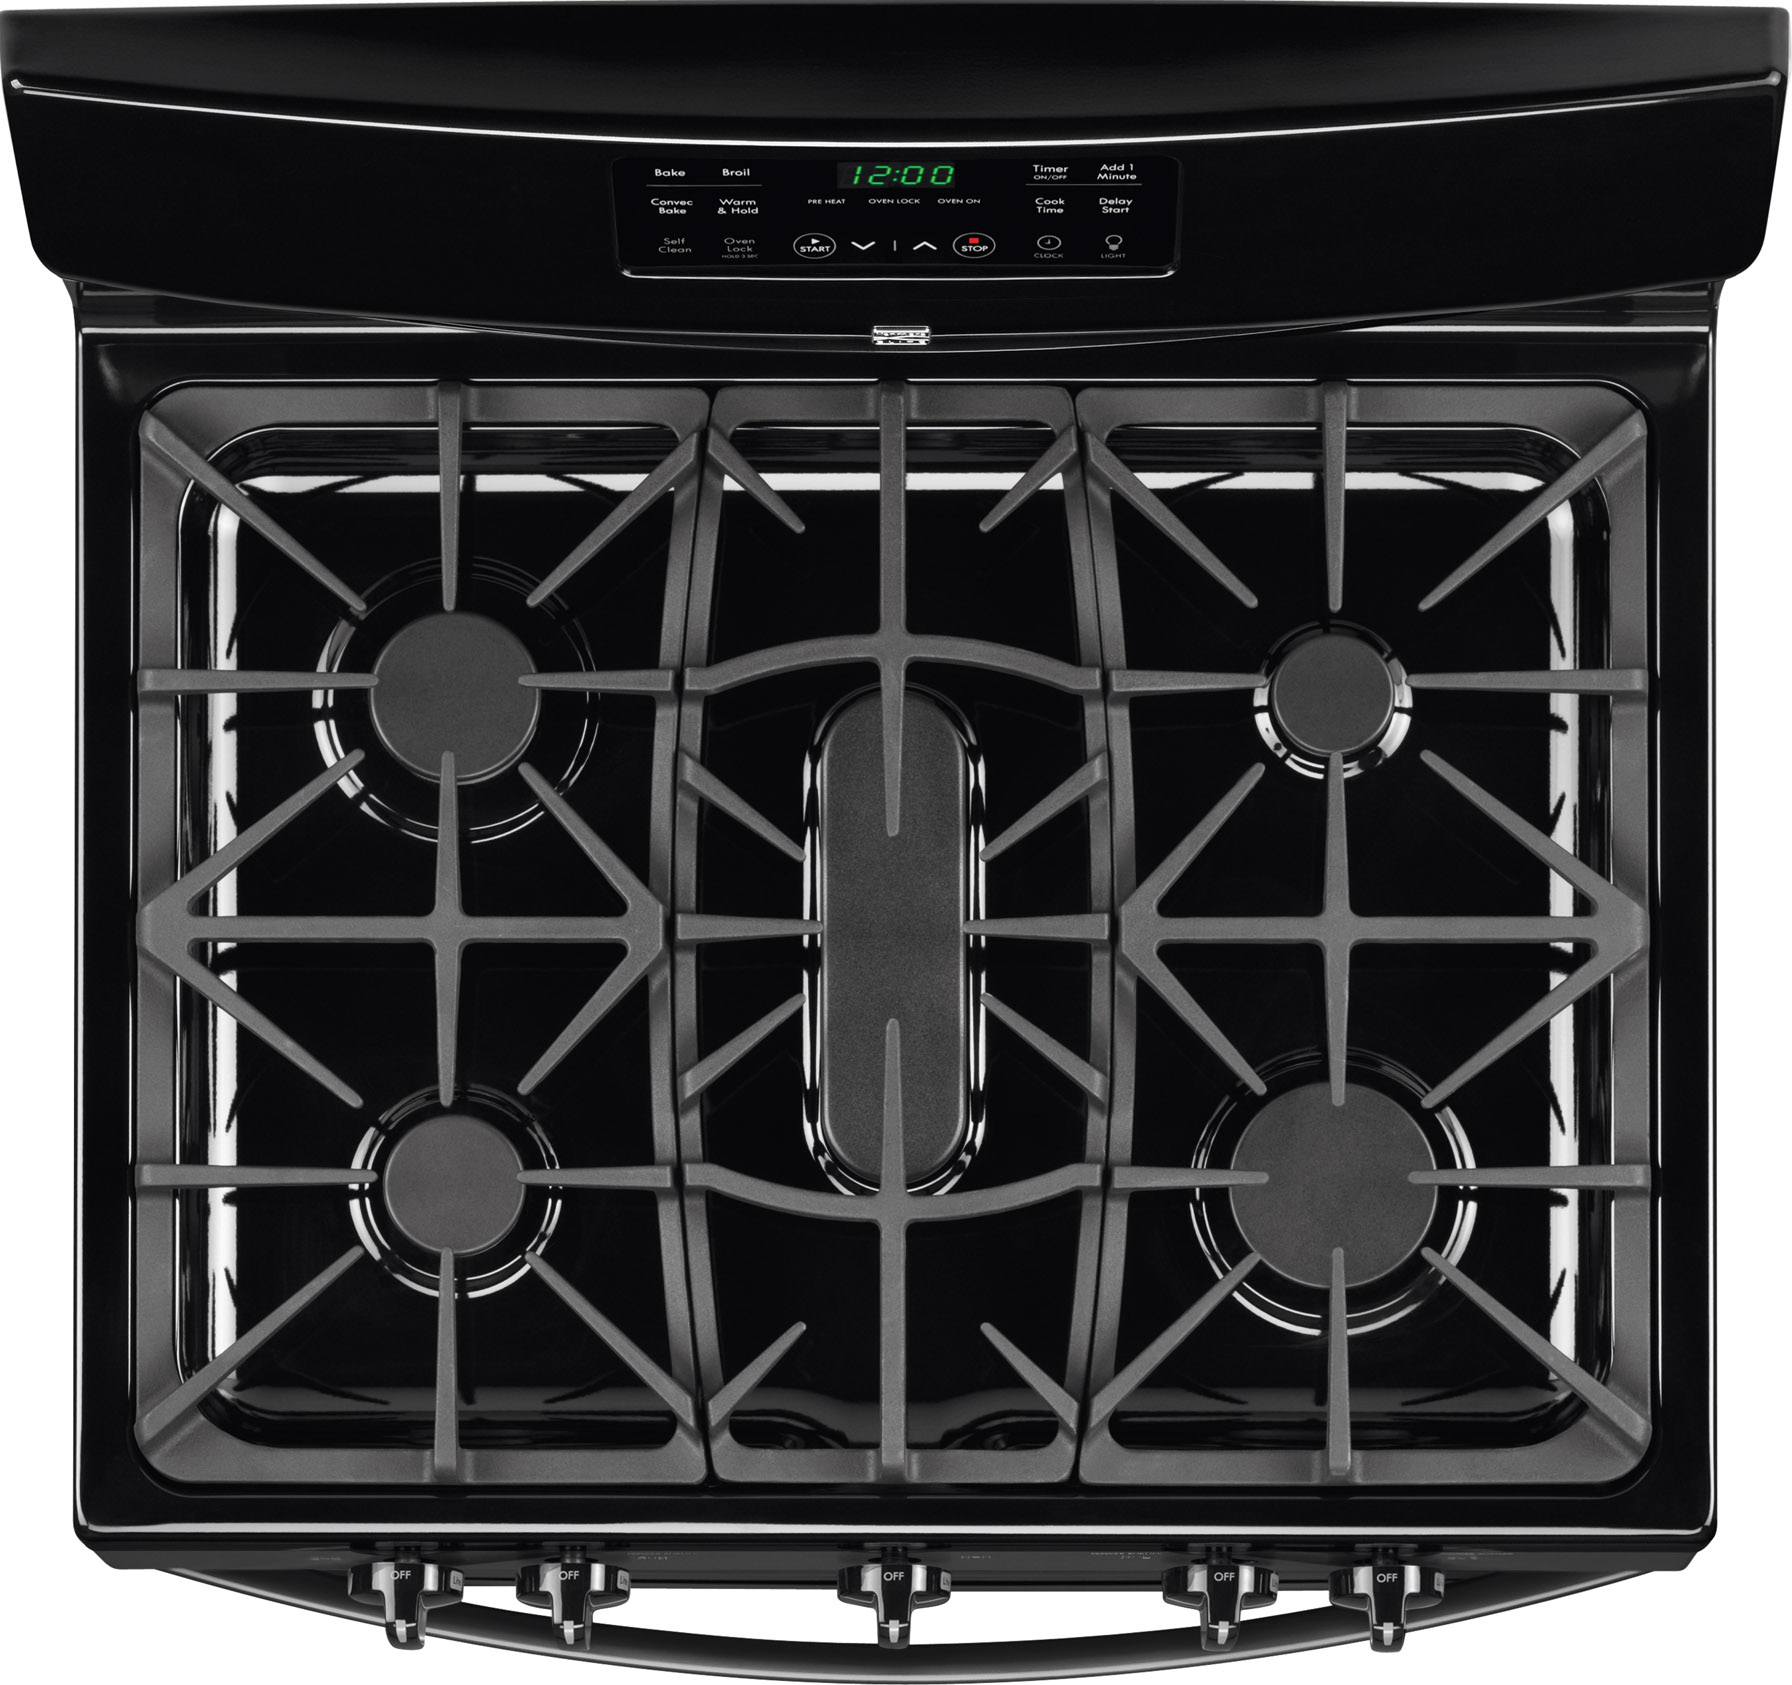 Kenmore 5.0 cu. ft. Freestanding Gas Range w/ Convection - Black